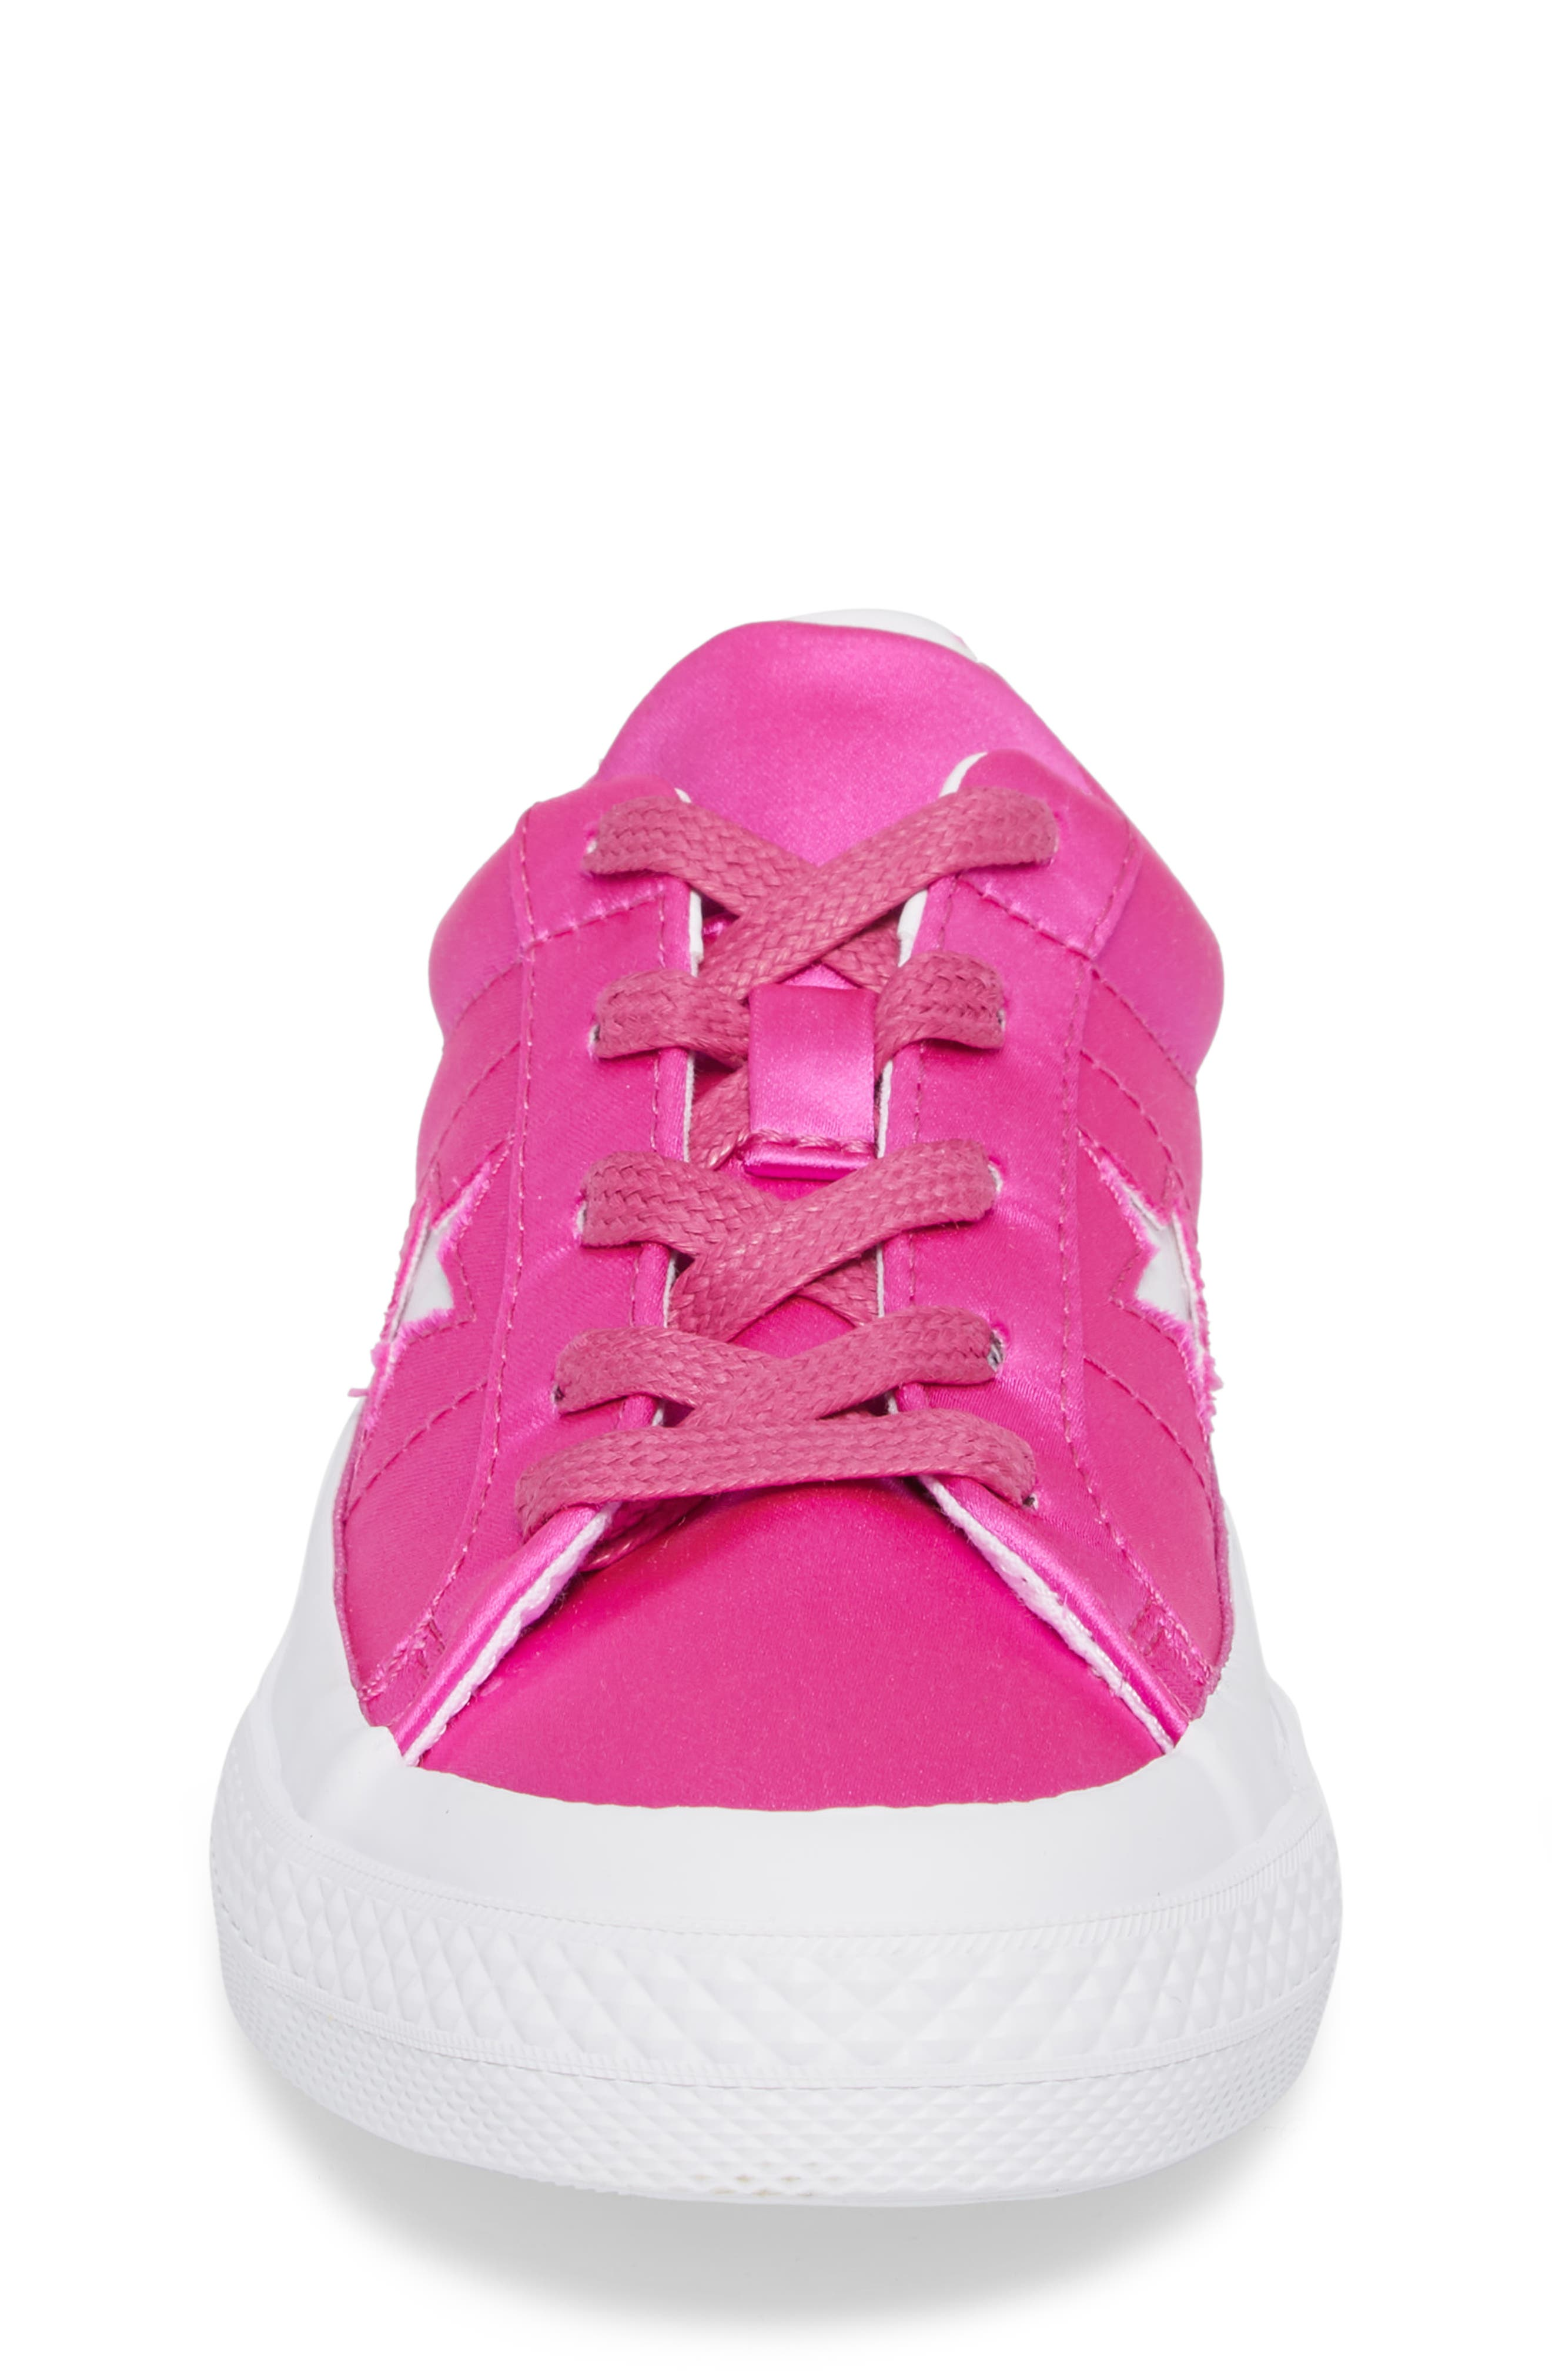 Chuck Taylor<sup>®</sup> All Star<sup>®</sup> One Star Satin Low Top Sneaker,                             Alternate thumbnail 4, color,                             Hyper Magenta